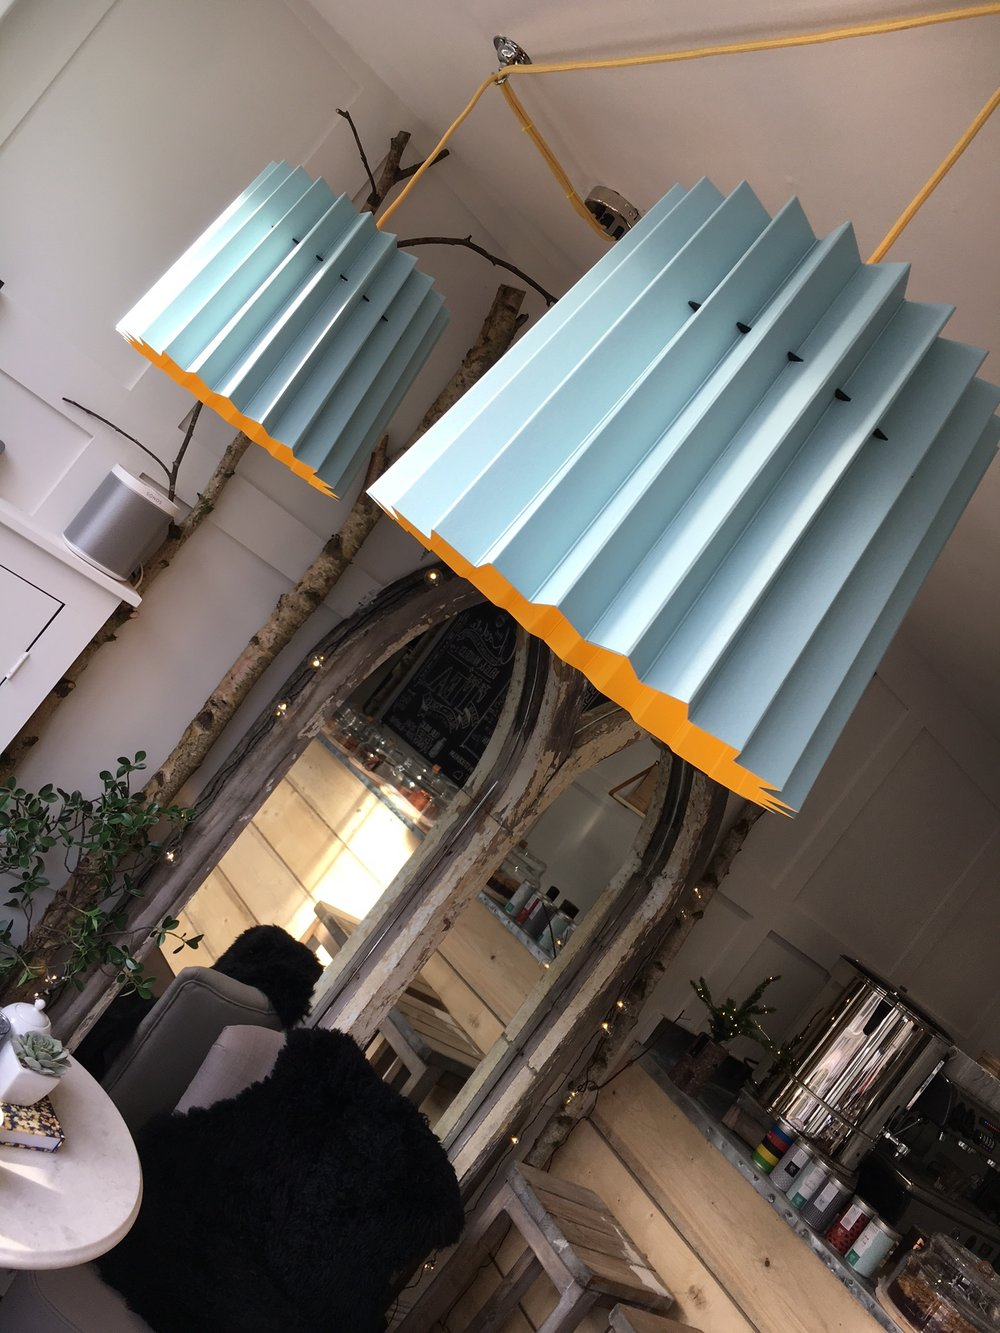 Lane Twin Tone Lampshades in Fika cafe, Oakham